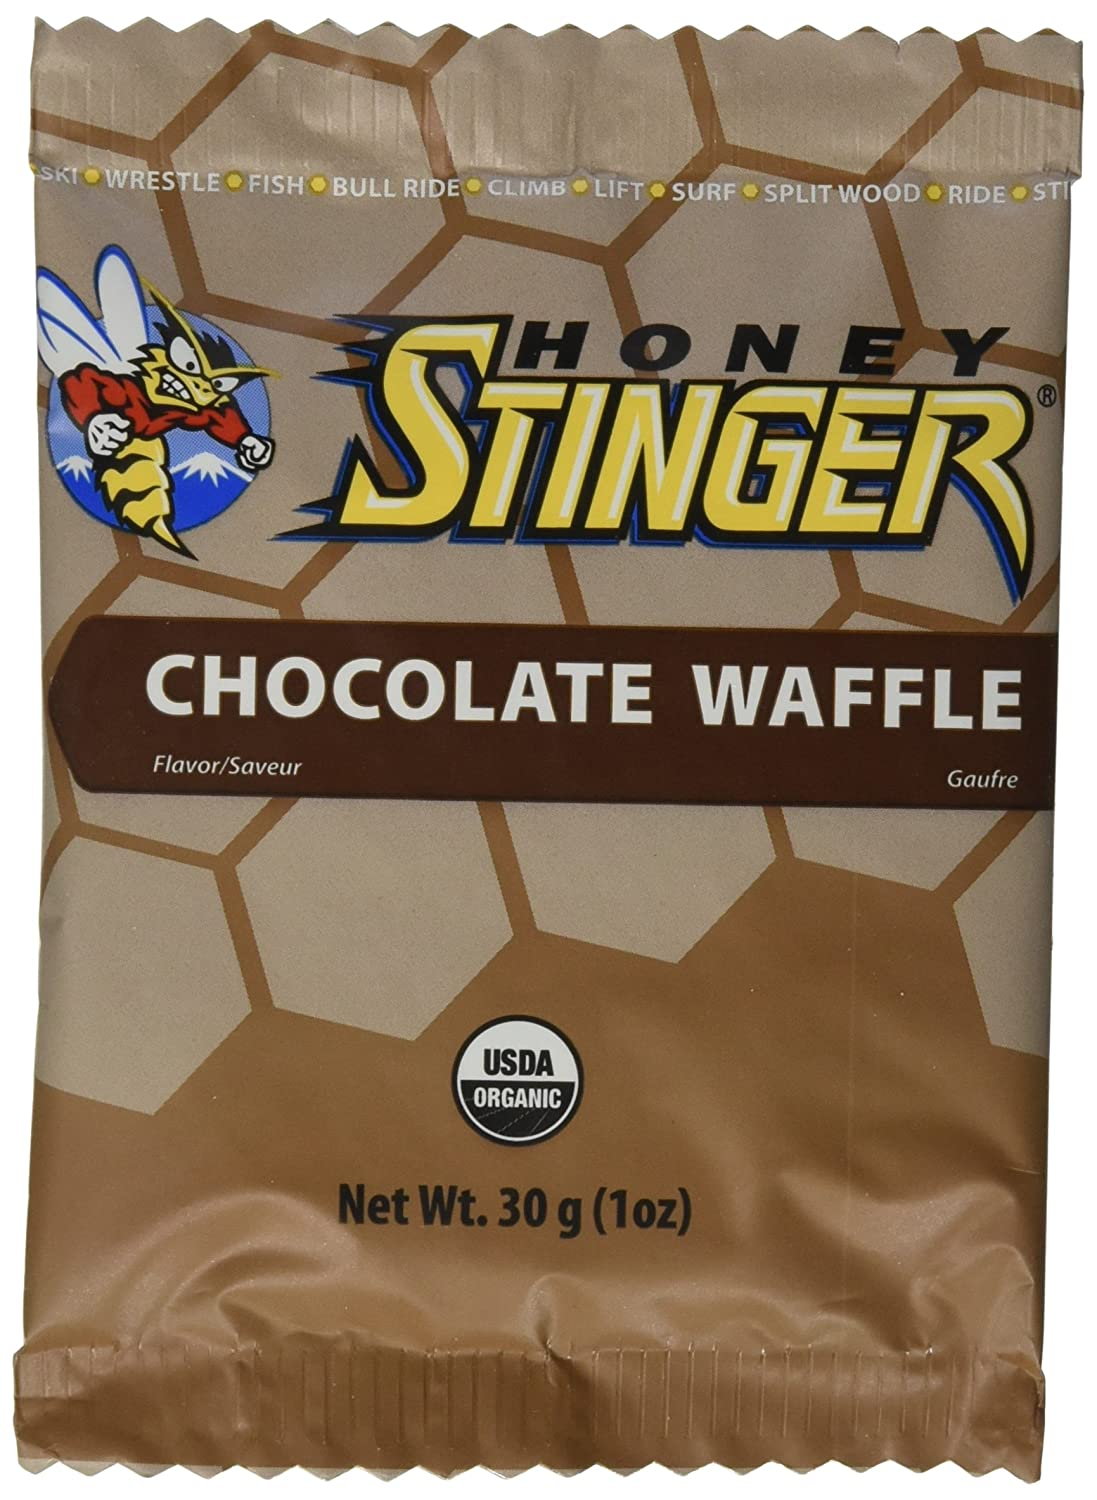 HONEY STINGER Food Chocolate Waffle 16 low-pricing Ounce Tampa Mall 1 Count